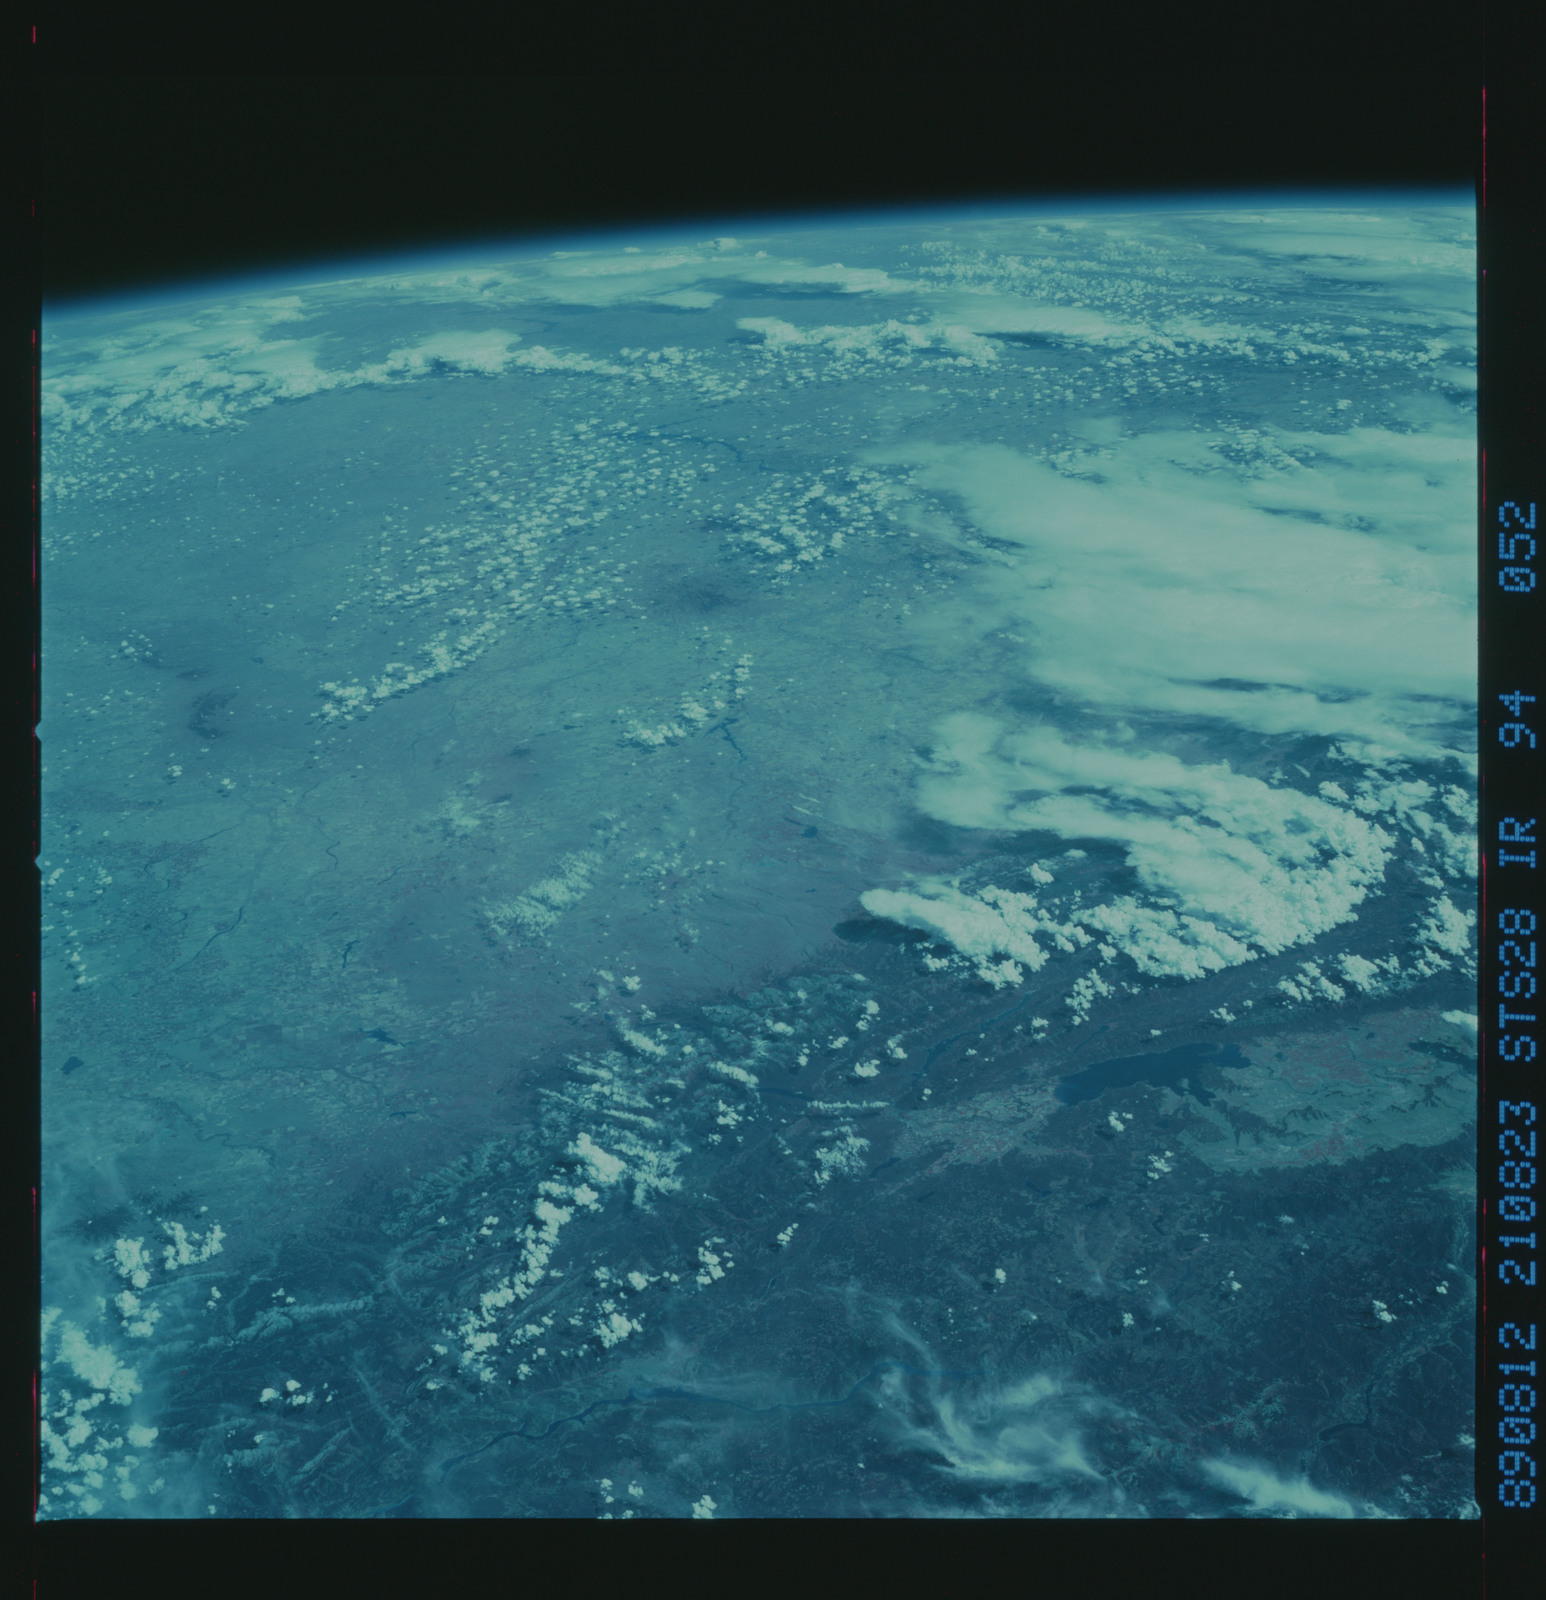 S28-94-052 - STS-028 - Infrared Earth observations taken the STS-28 mission